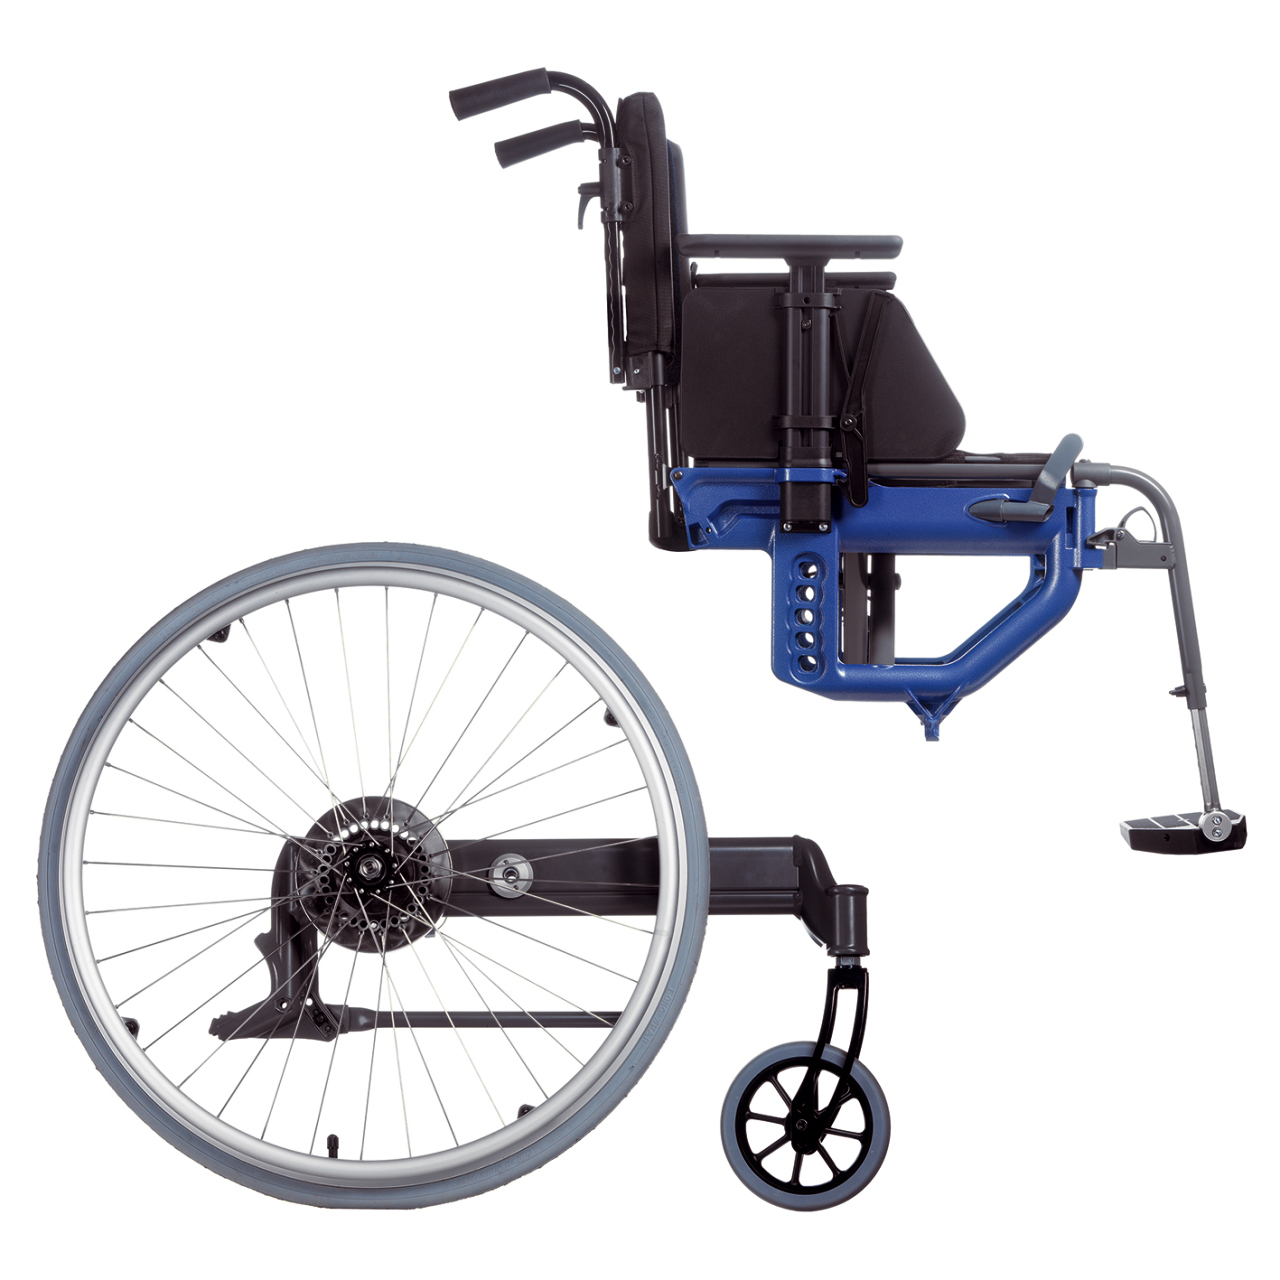 Etac Next wheelchair consists of two units – a Seat and Propulsion unit.